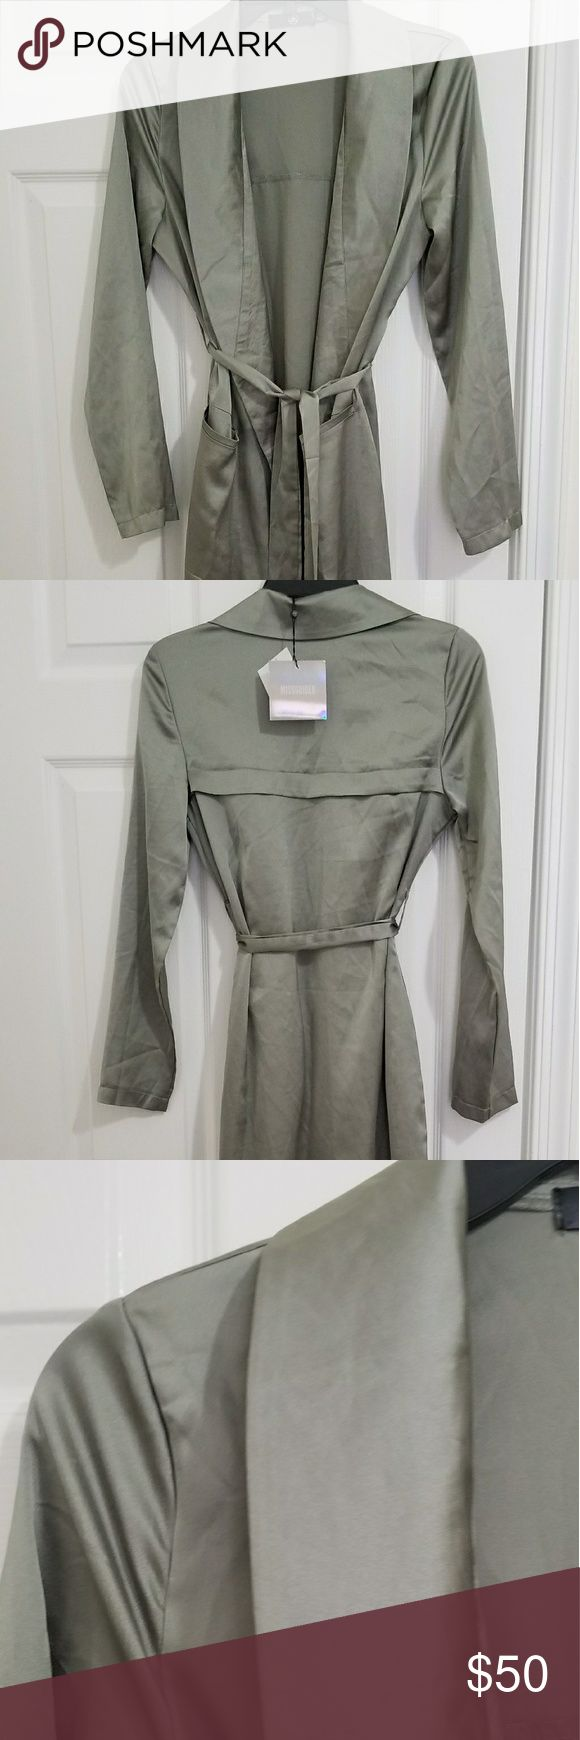 Misguided Sage Green Silk/Satin Duster Trench Coat Brand new with tags. US size 2. Will fit XS or S. Misguided silky light green coat. This color sold out everywhere! Can be worn out for a modern look or at home with cute pajamas. This duster has an amazing soft silky flow Missguided Jackets & Coats Trench Coats